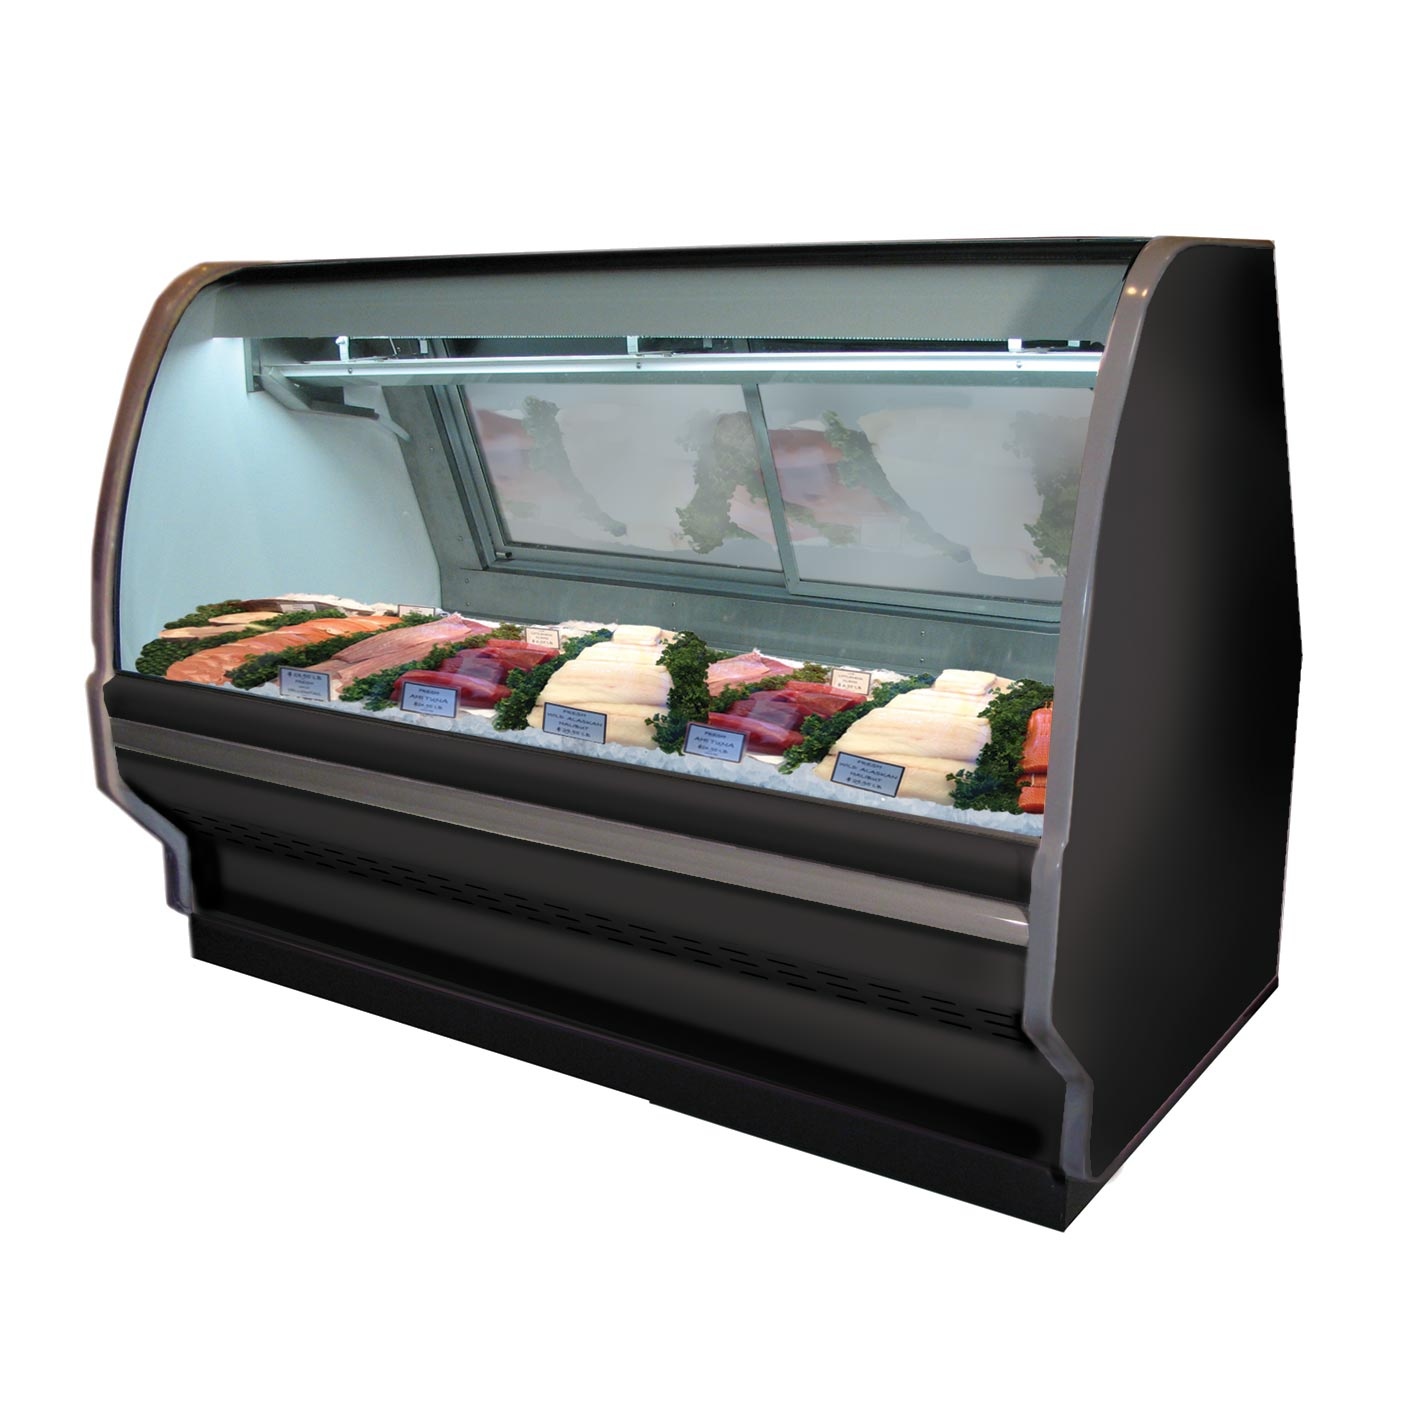 Howard-McCray R-CFS40E-6-S-LED display case, deli seafood / poultry